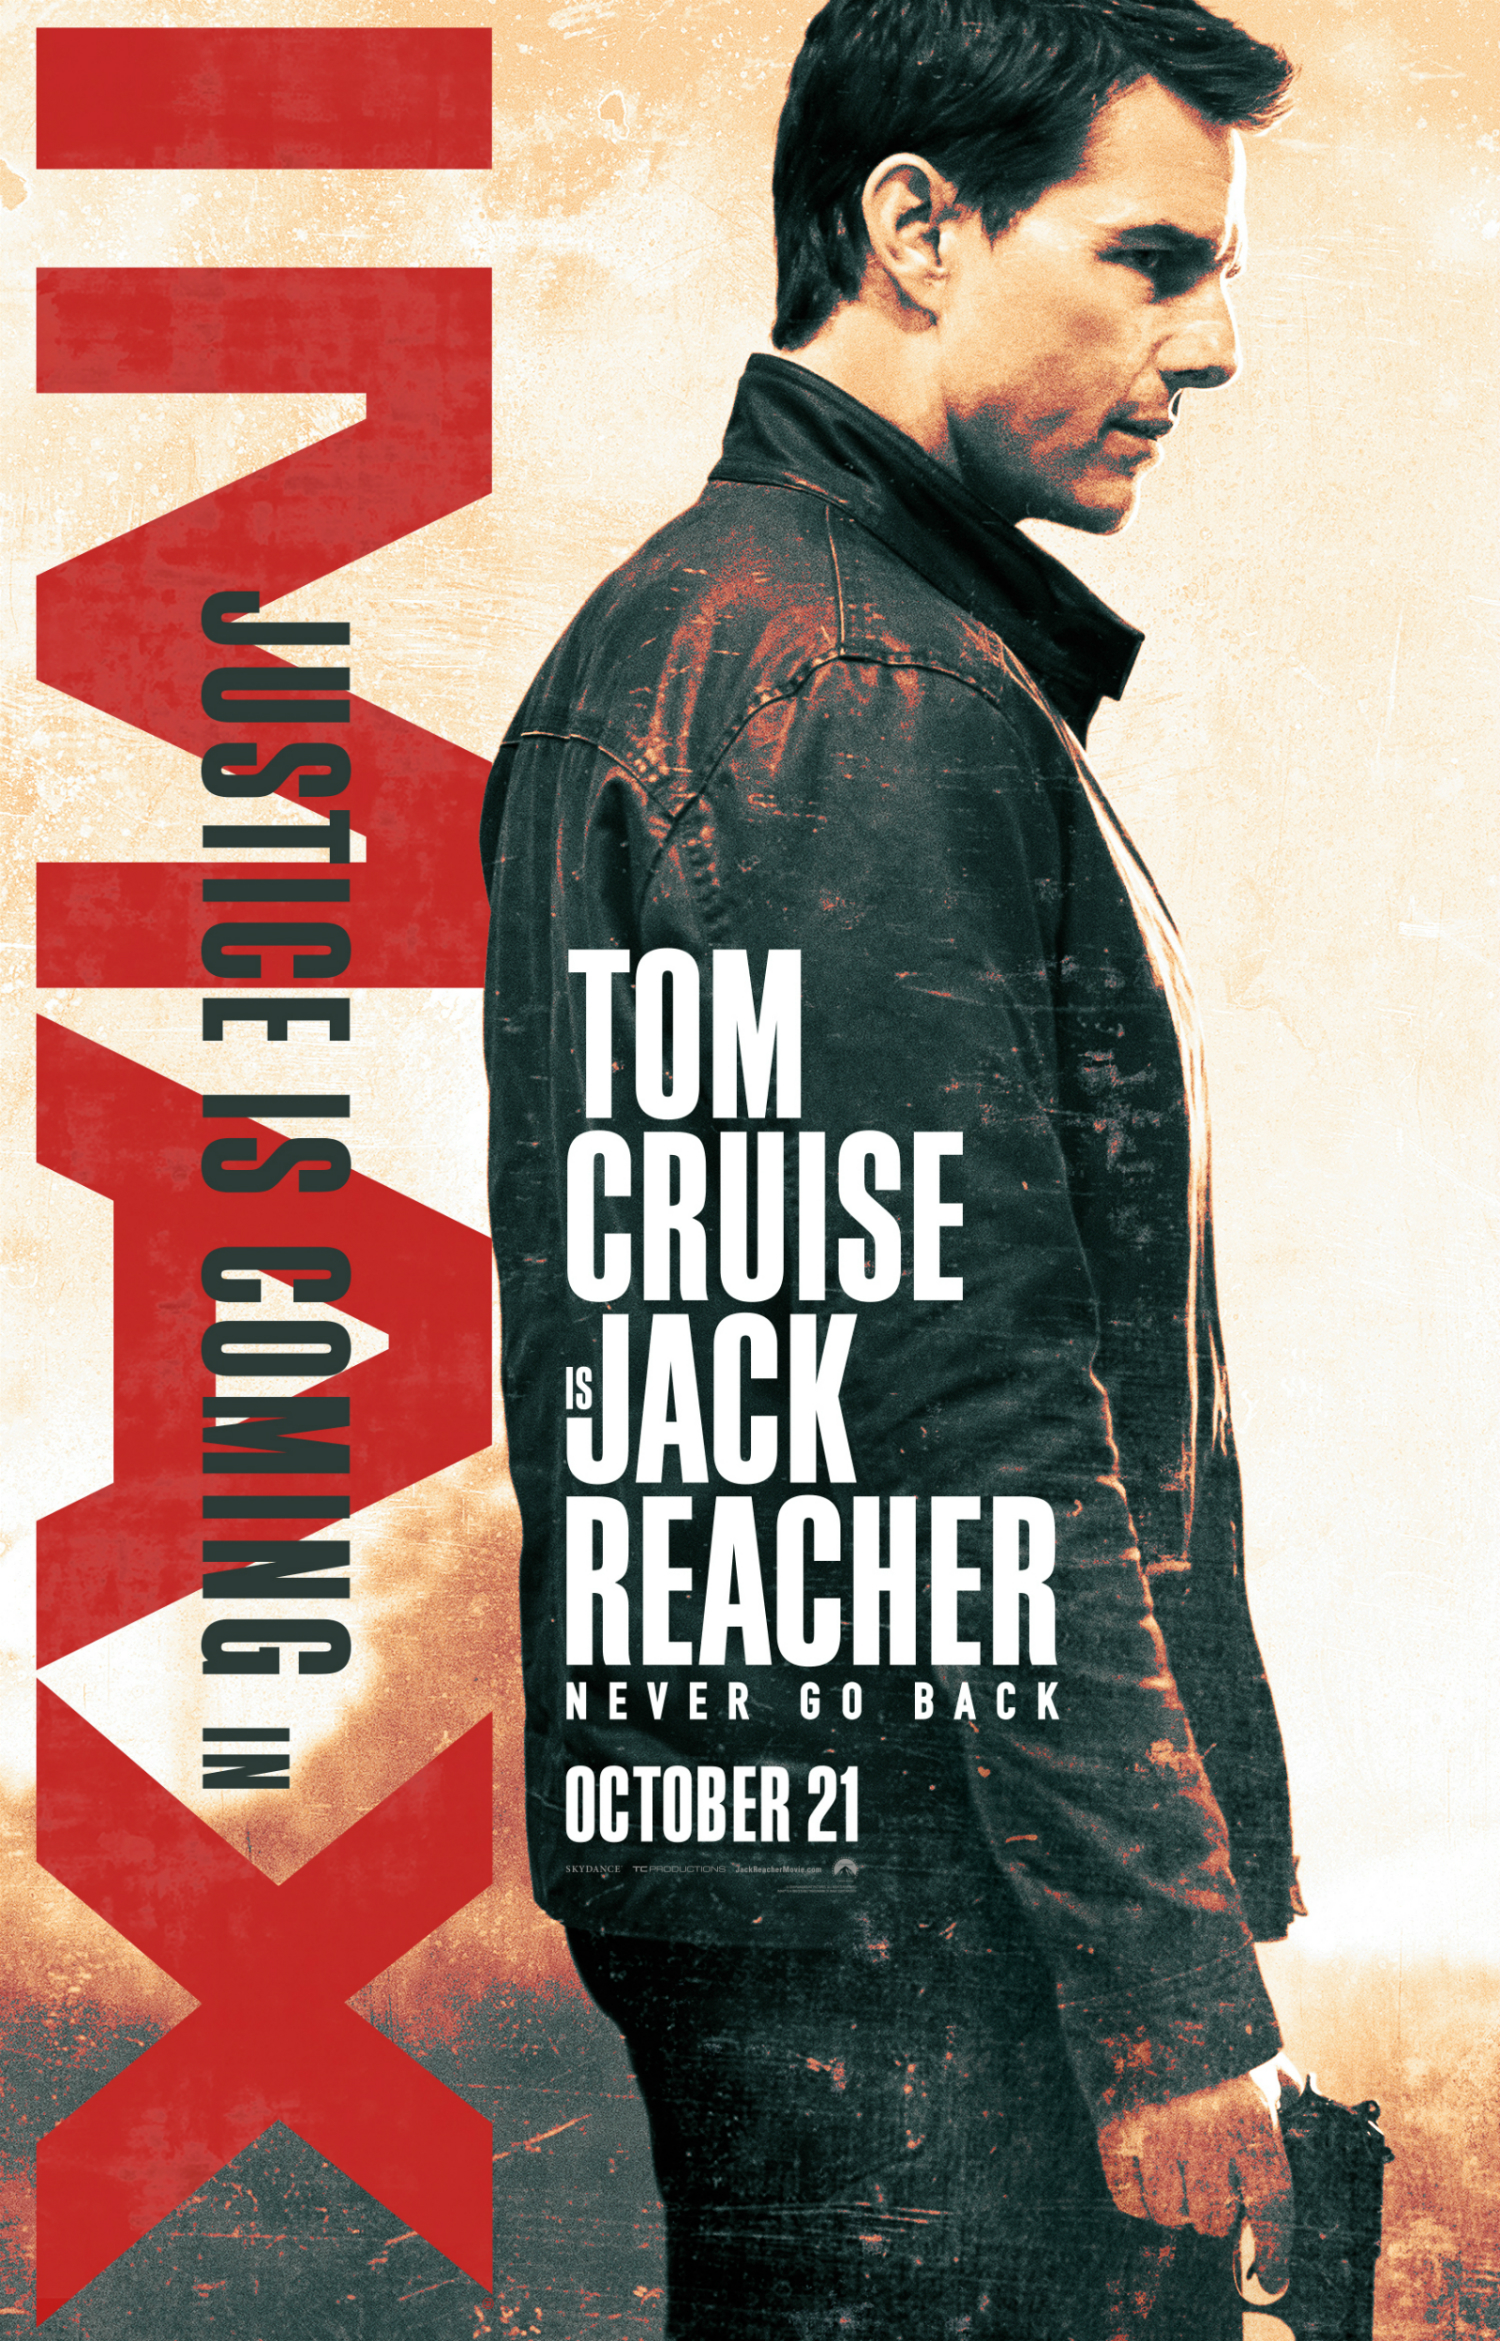 Jack Reacher 2 IMAX Trailer: That's Excitement in Tom ...